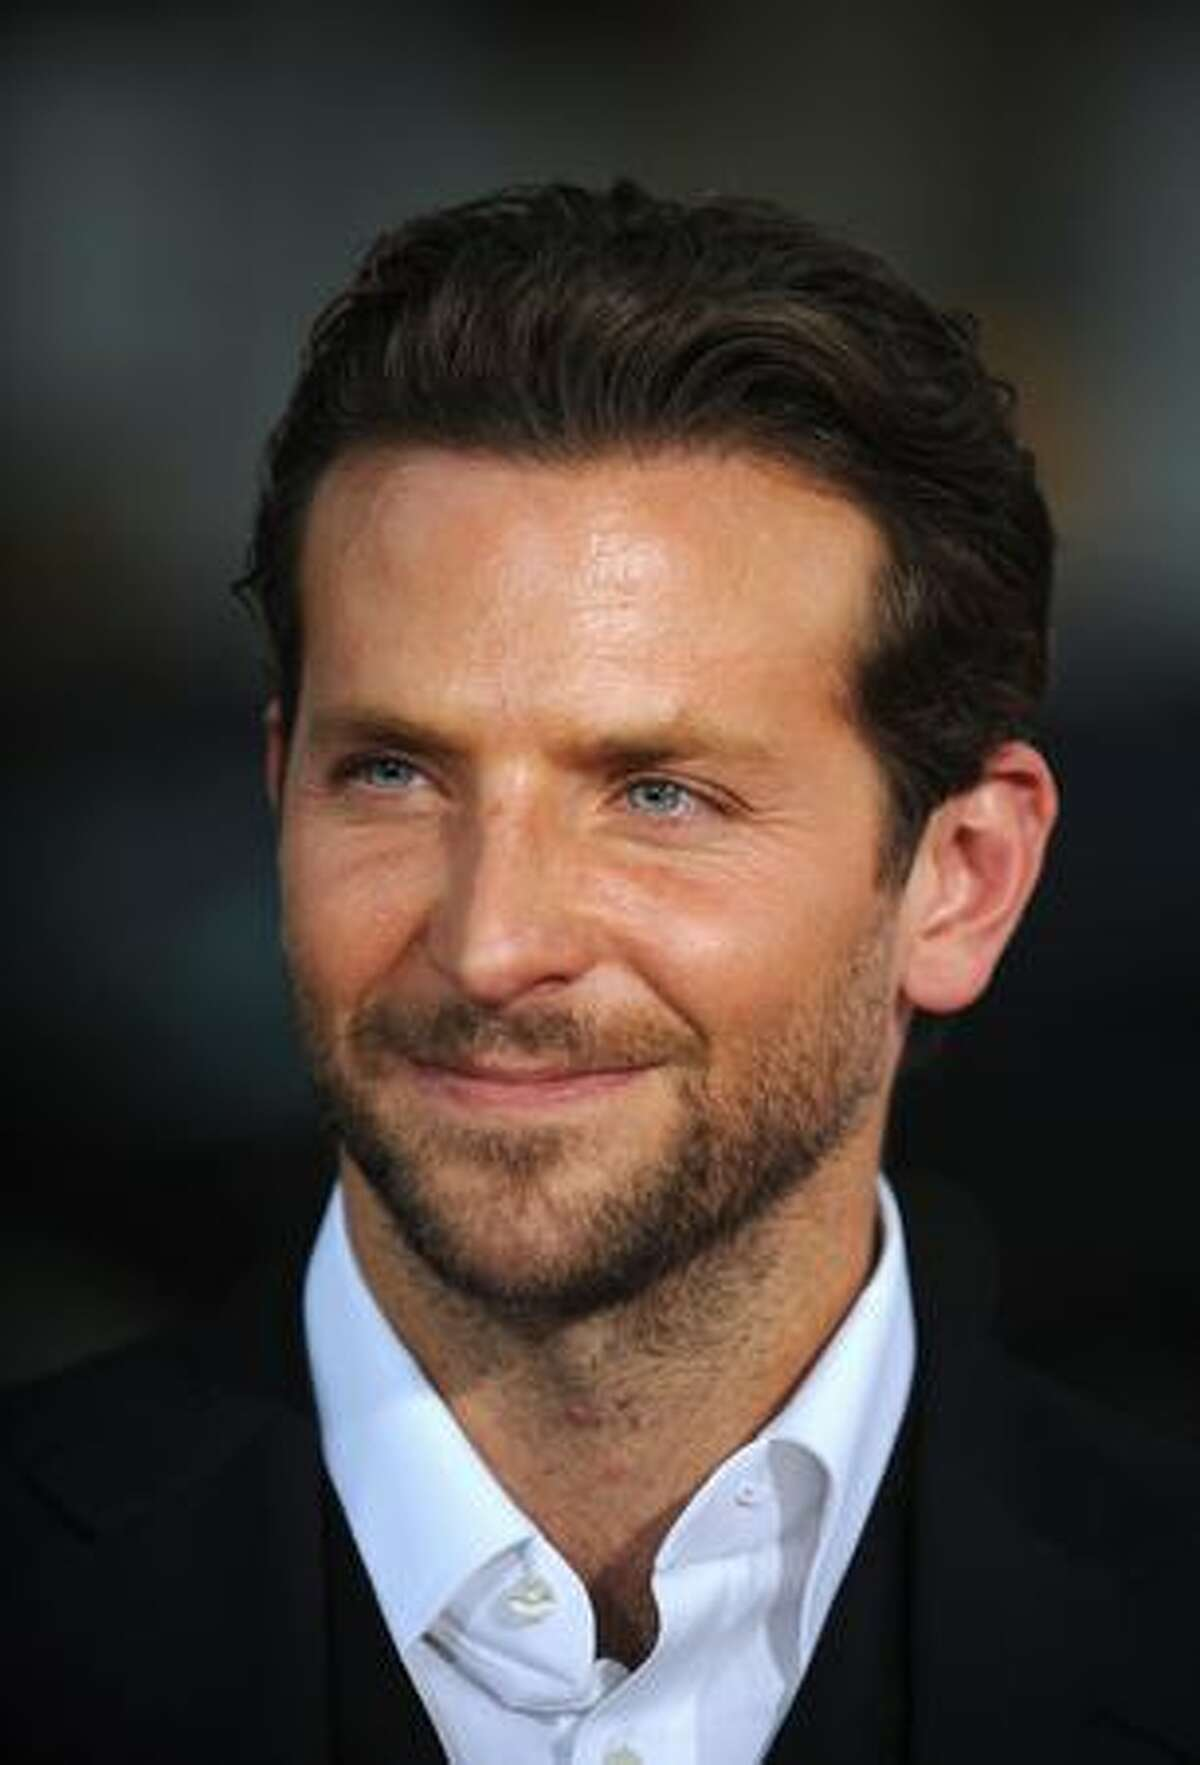 Actor Bradley Cooper arrives for the world premiere of